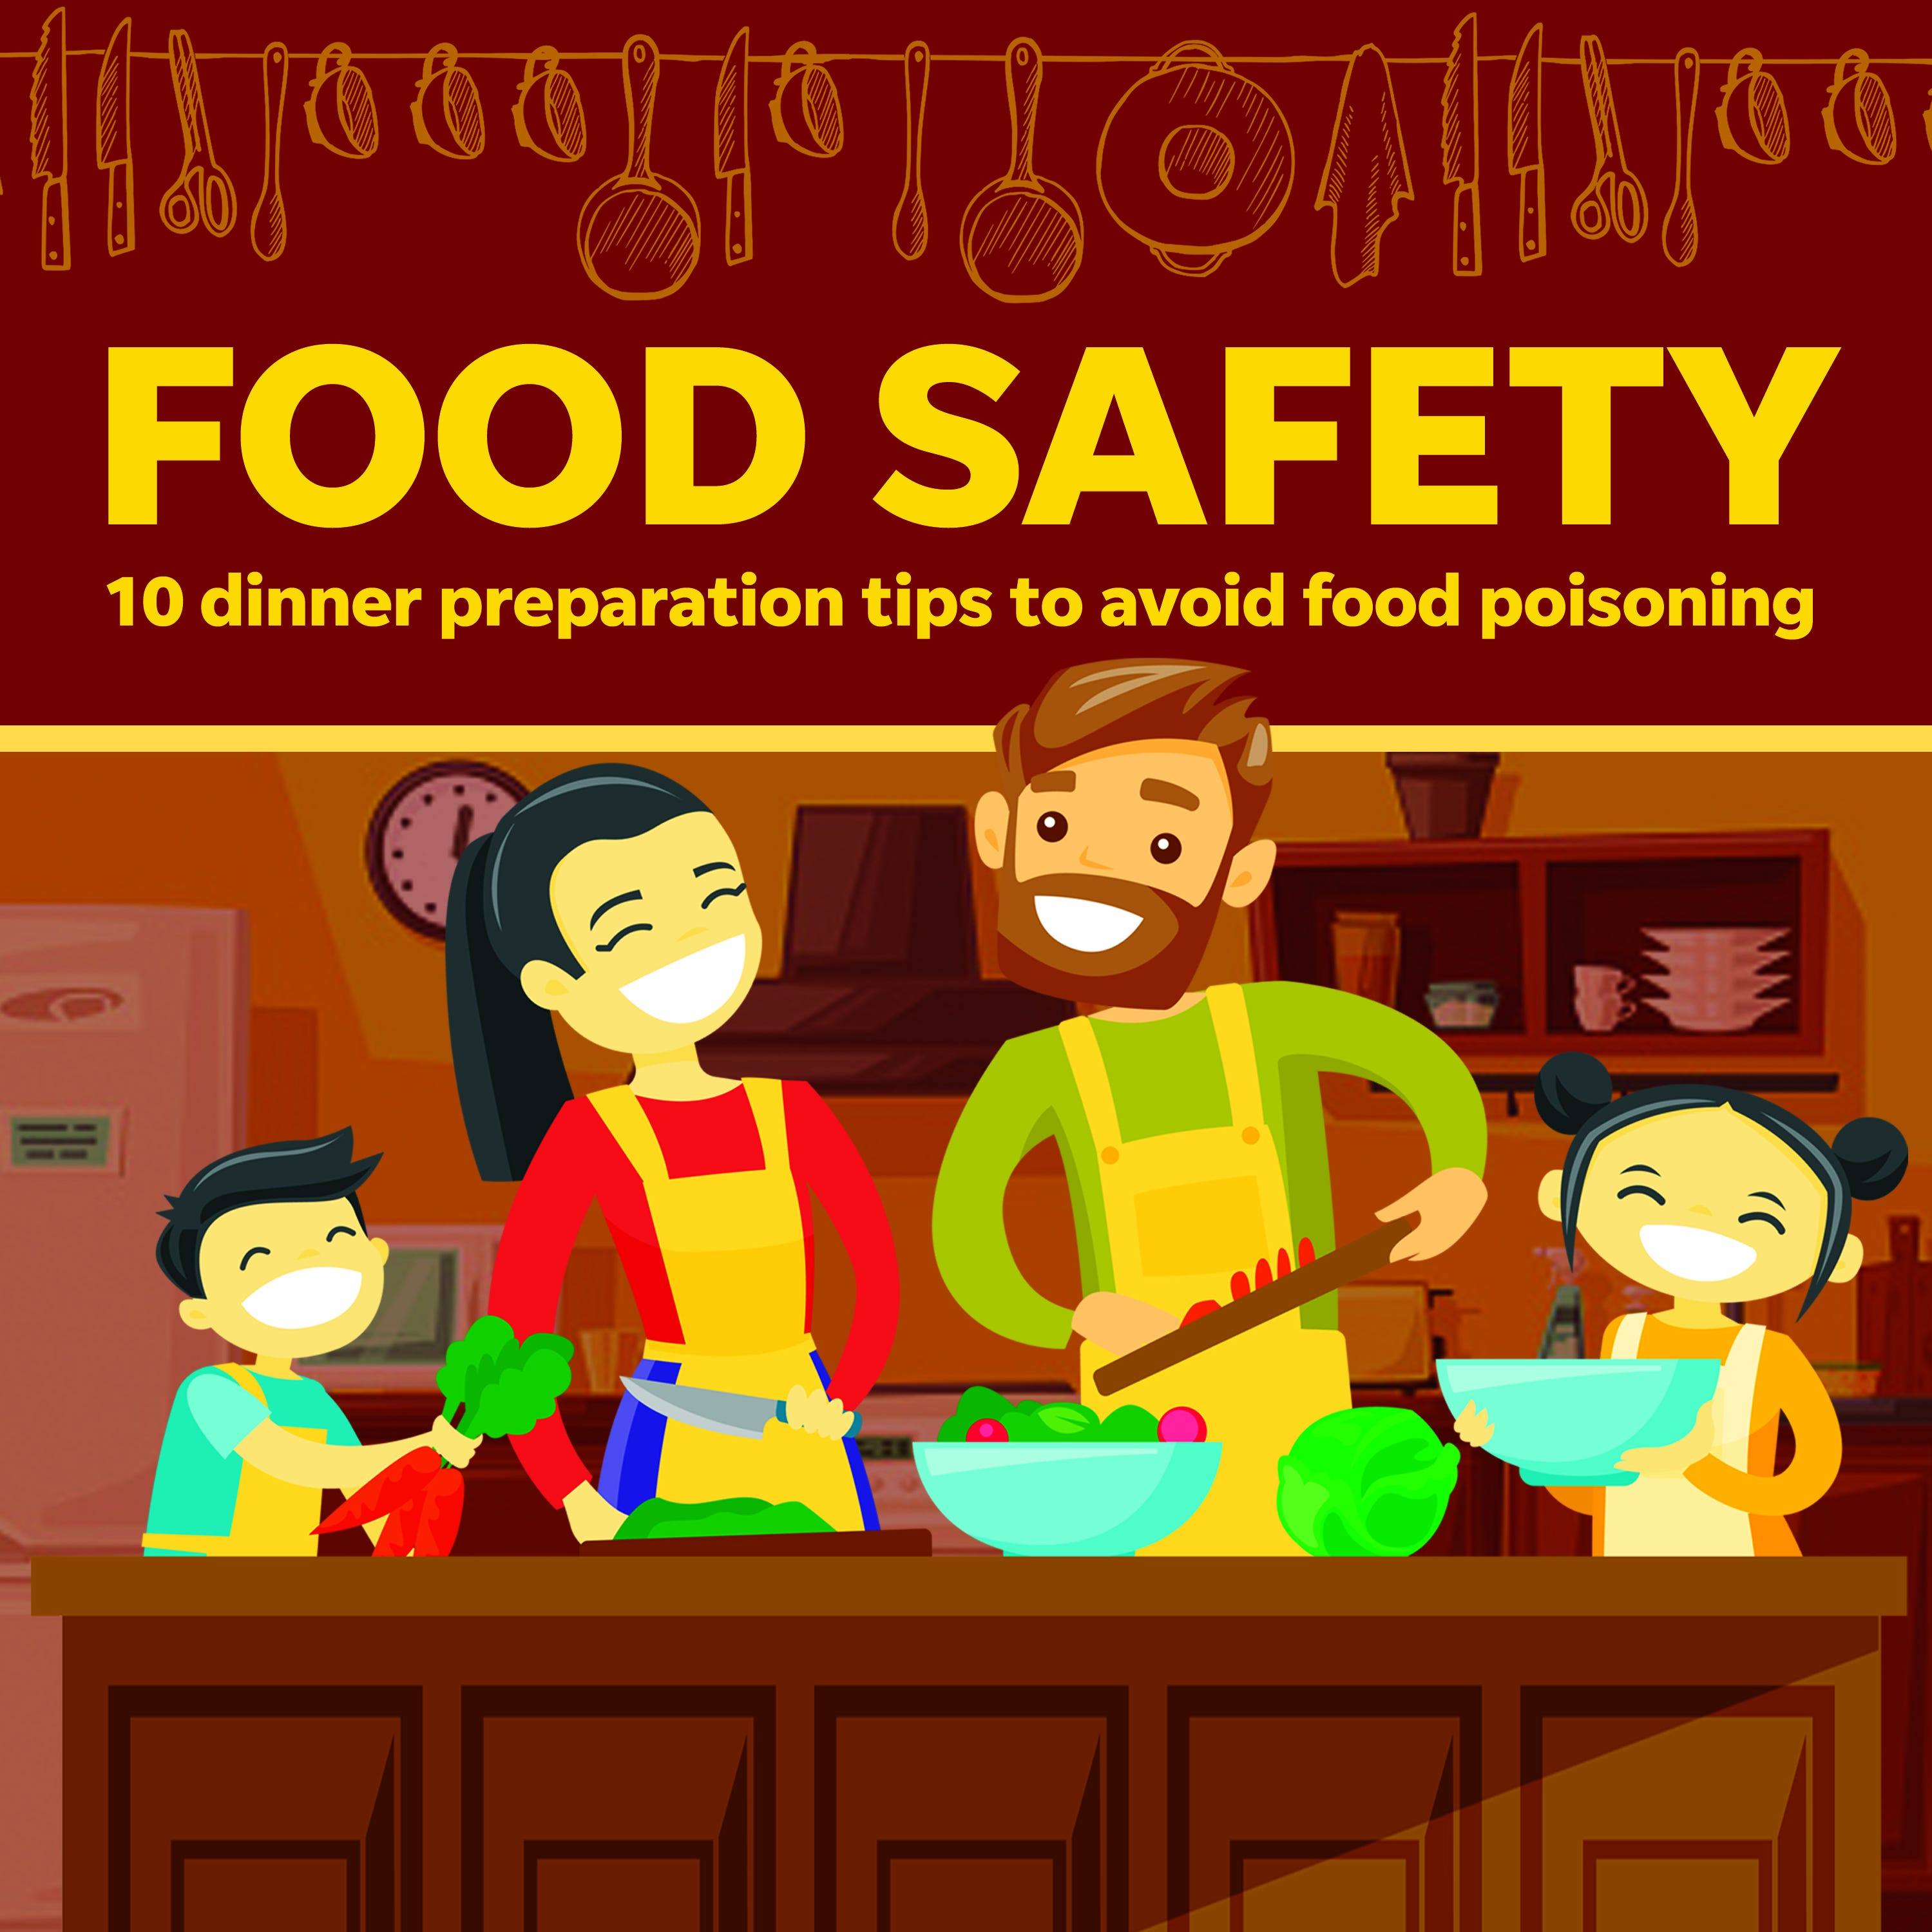 Food safety: 10 dinner preparation tips to avoid food poisoning